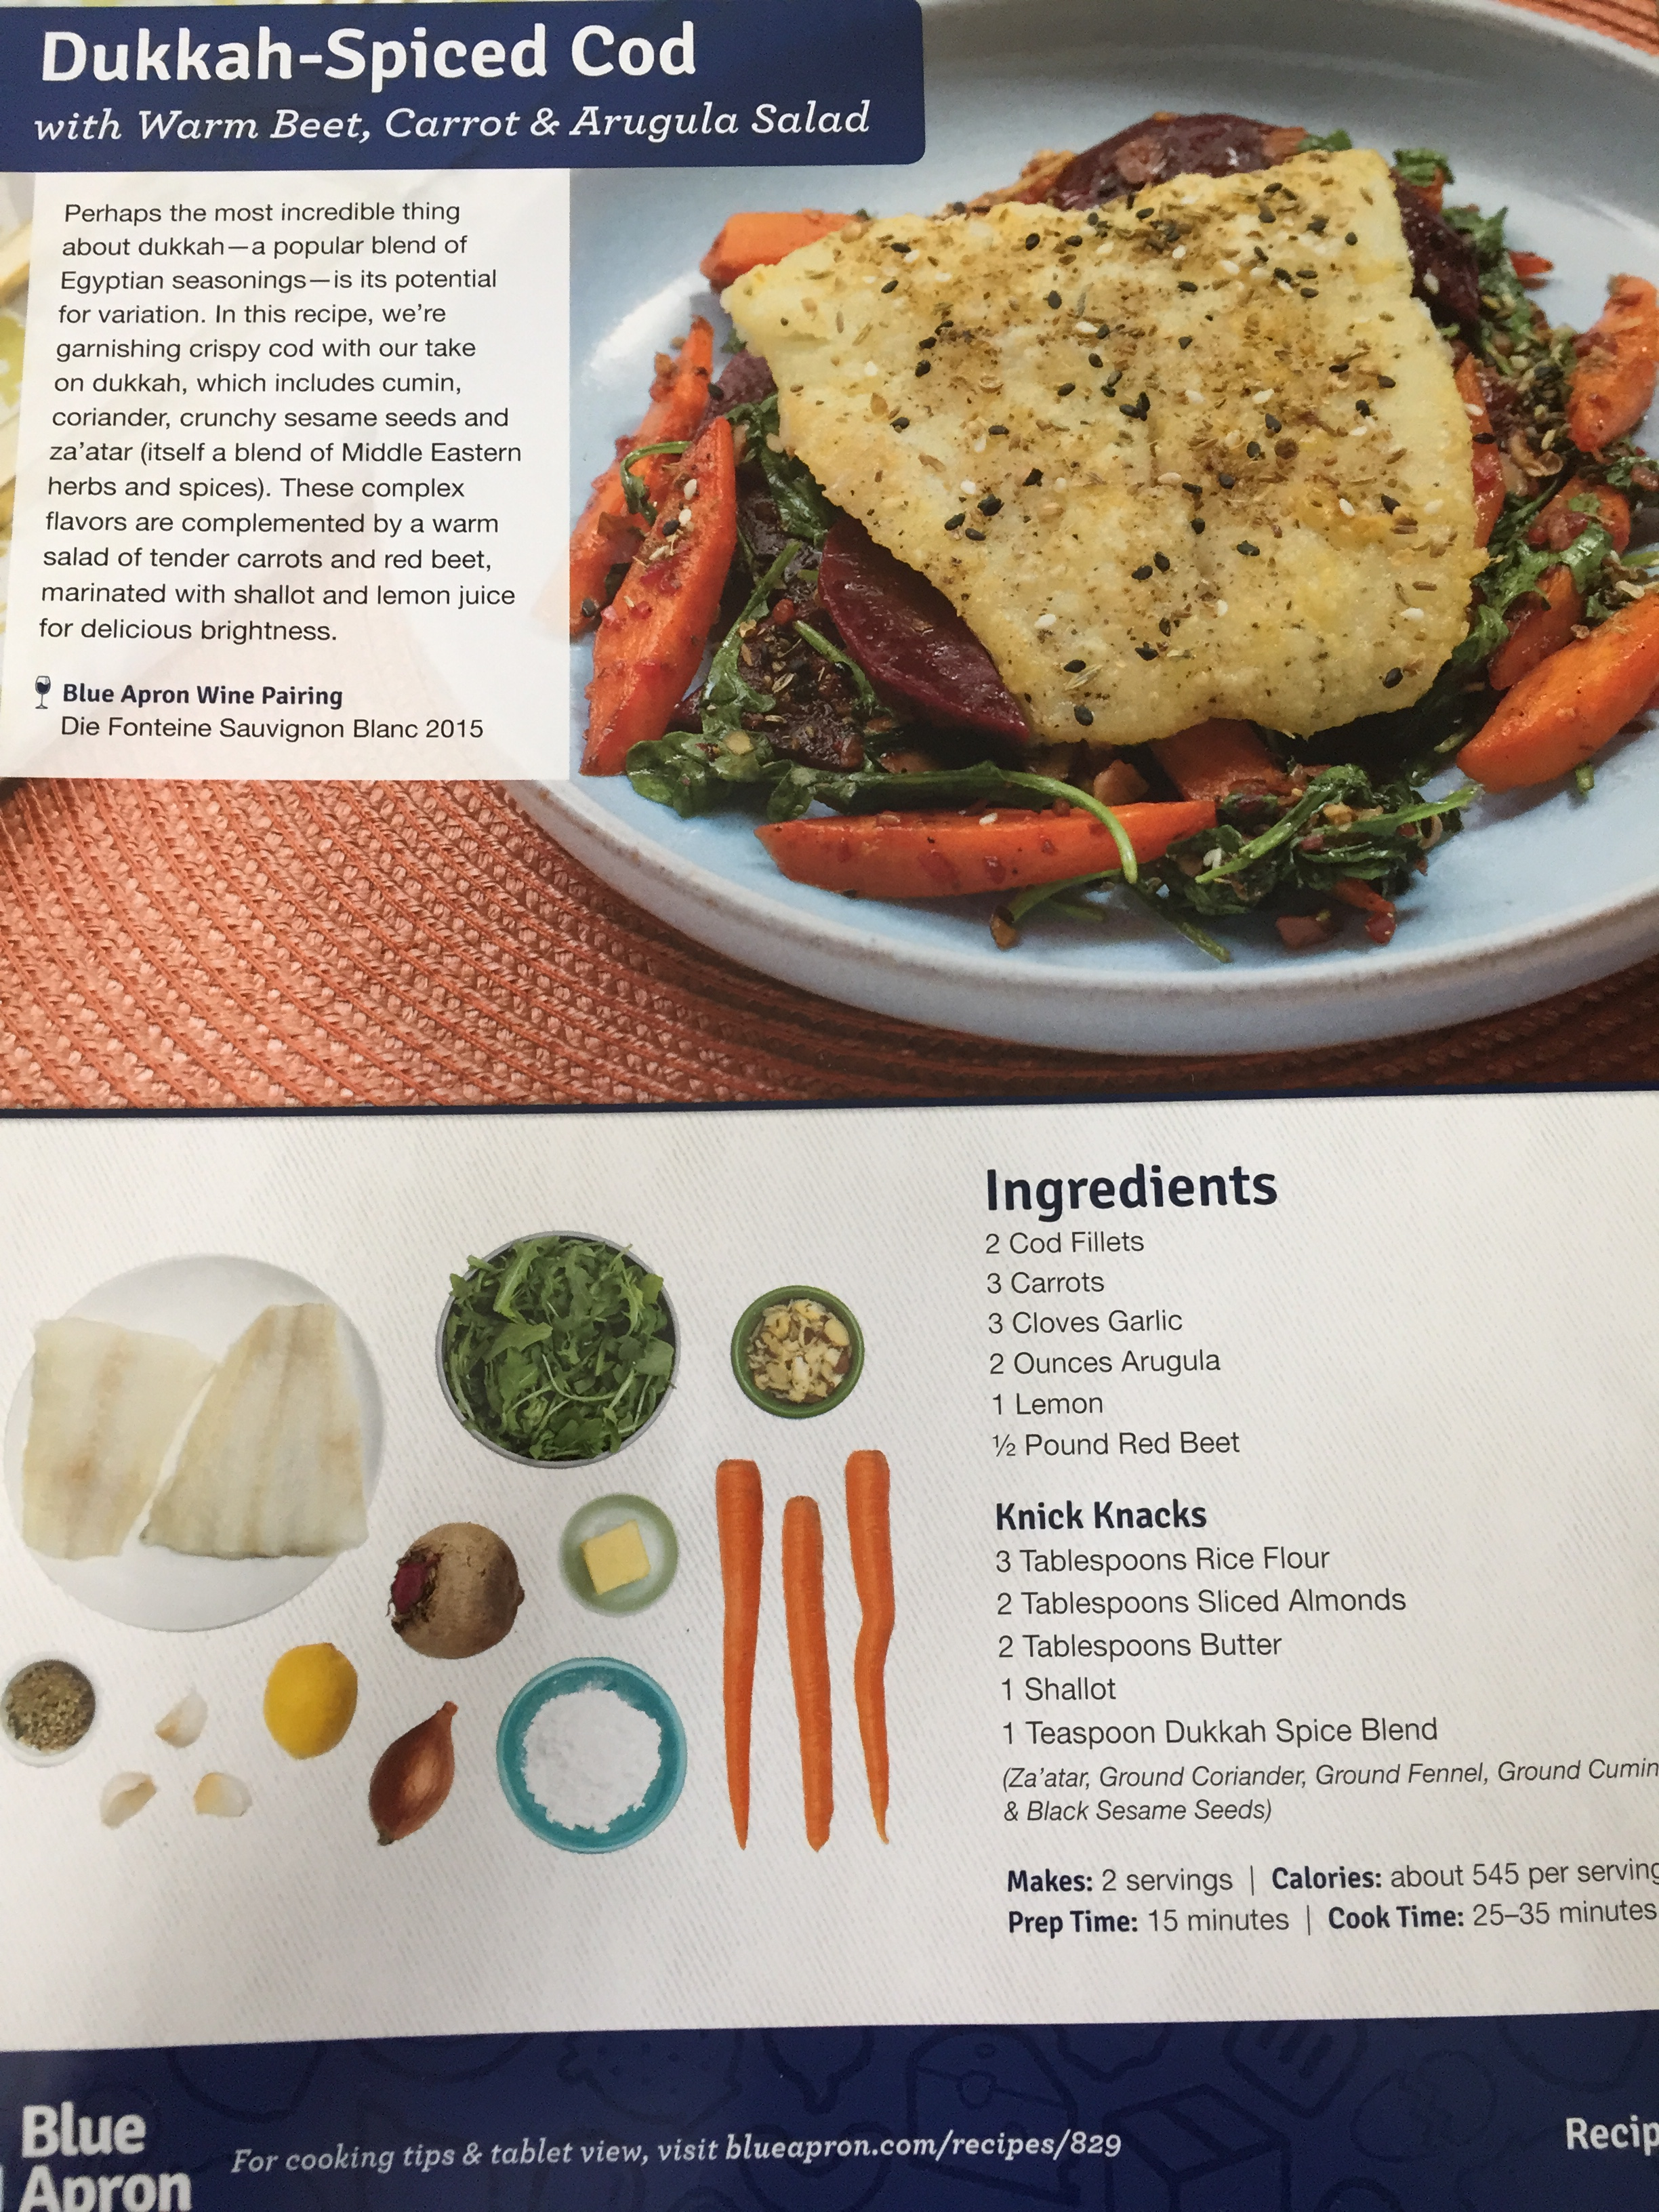 The Blue Apron recipe cards are incredibly easy to follow, and the combination of visuals and text avoid any misinterpretations. Julia Child would have loved what this is doing for inexperienced American cooks.